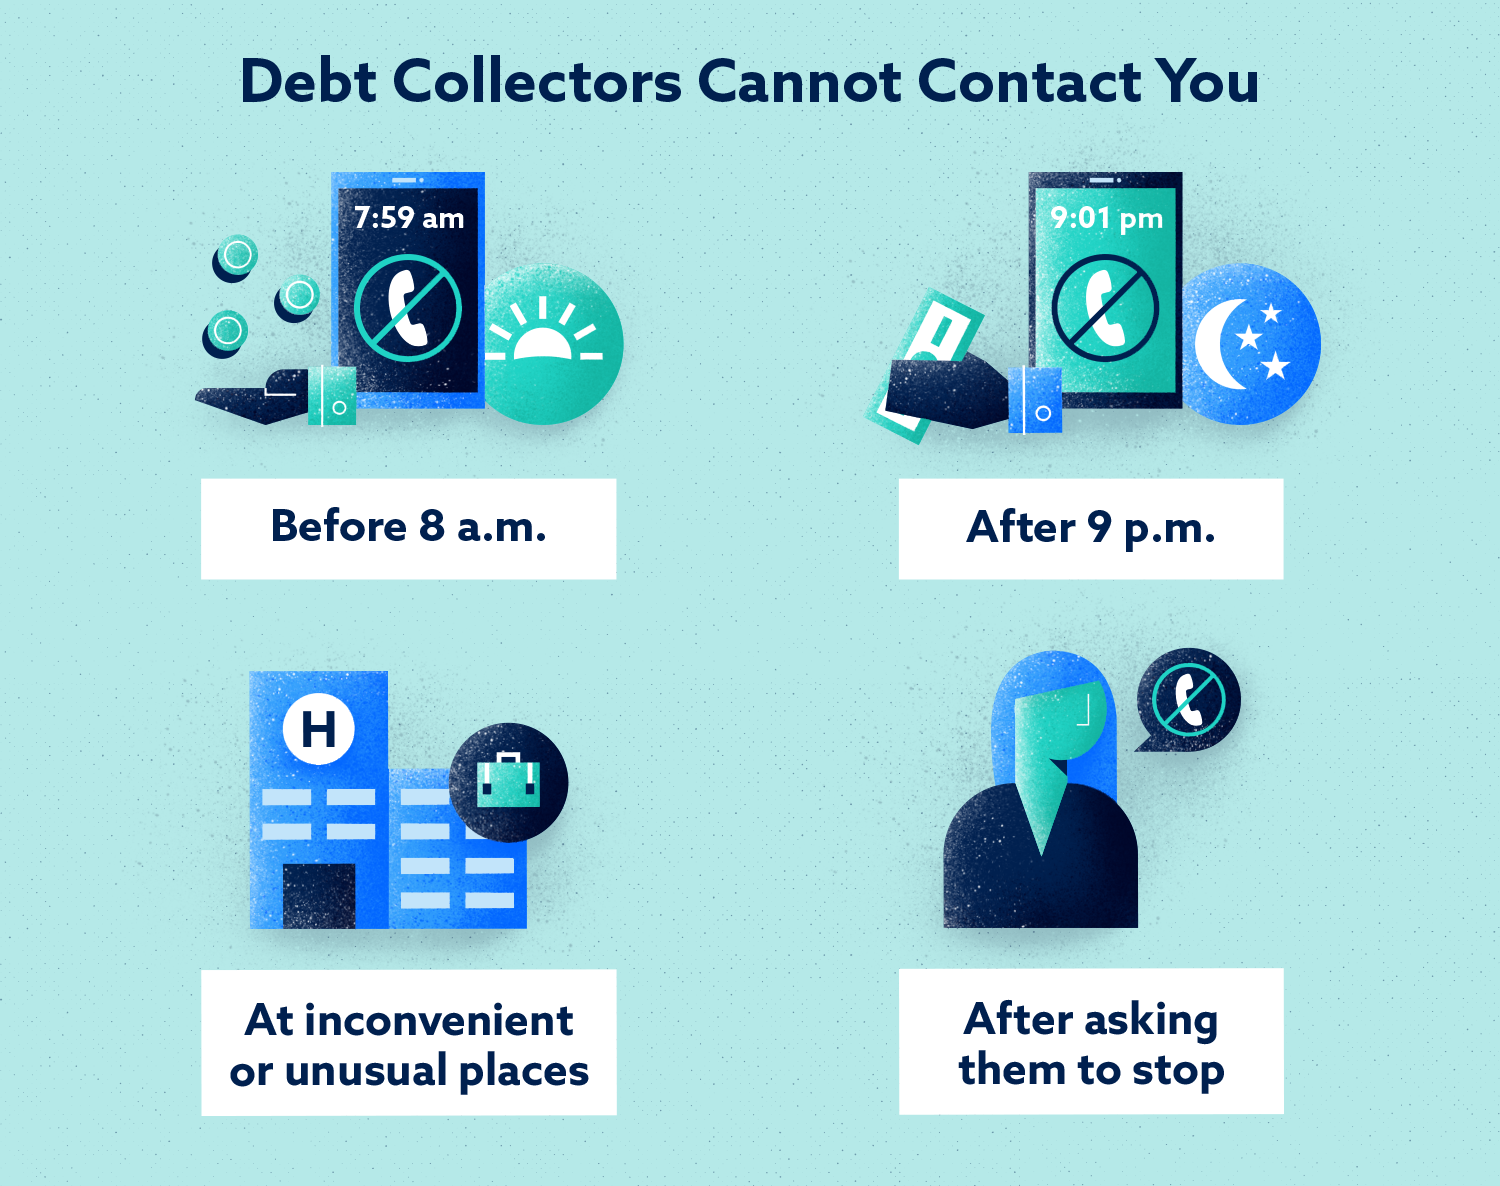 Debt Collectors Cannot Contact You Image